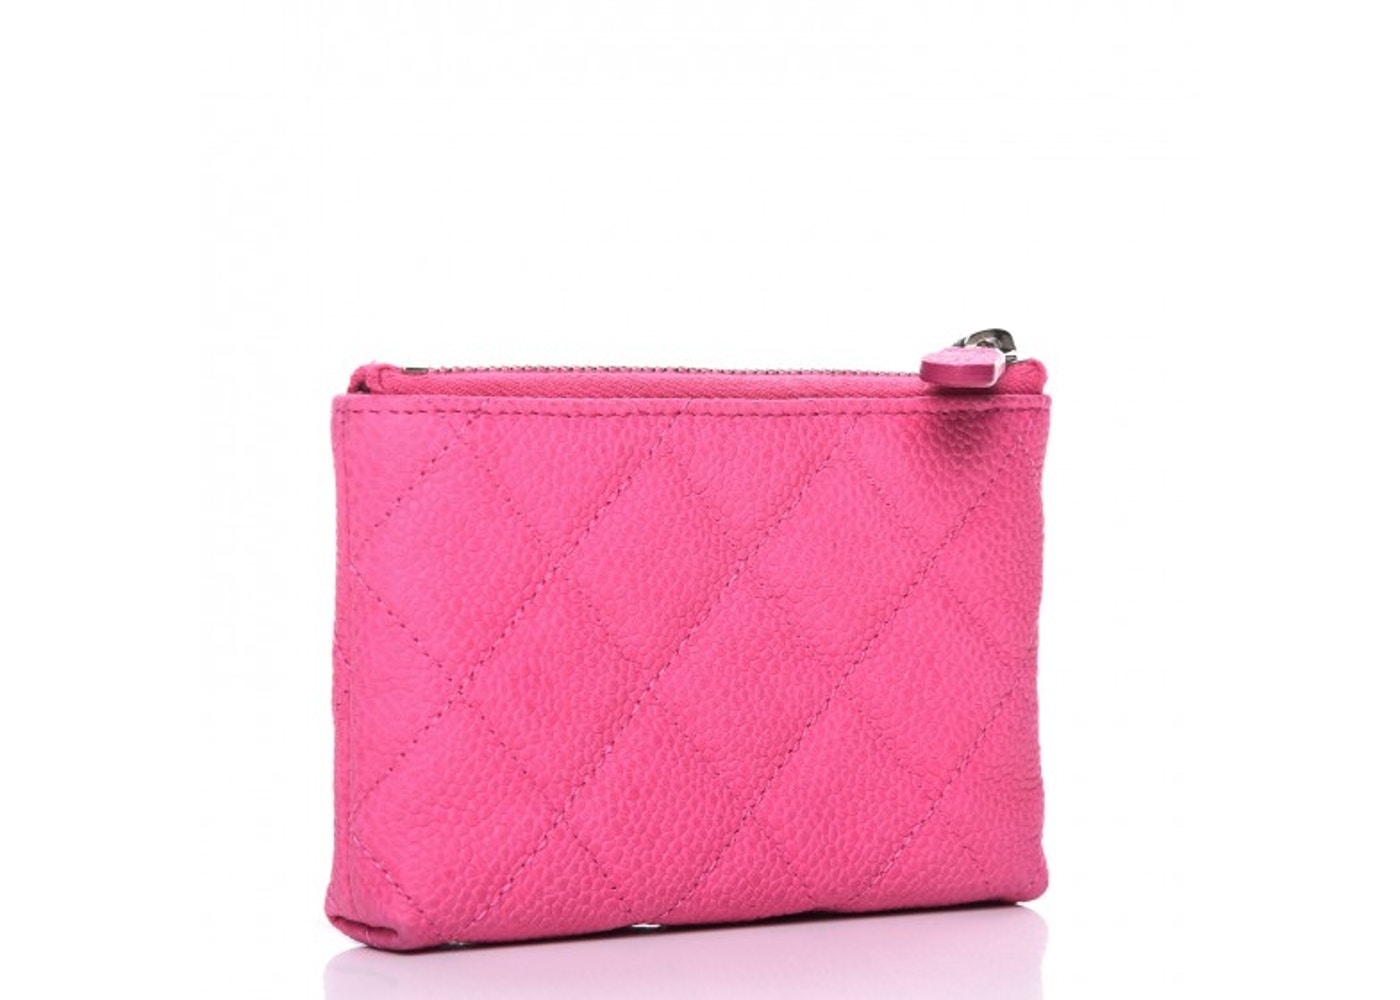 20a31324 Chanel Key Holder Case Quilted Diamond Iridescent Pink